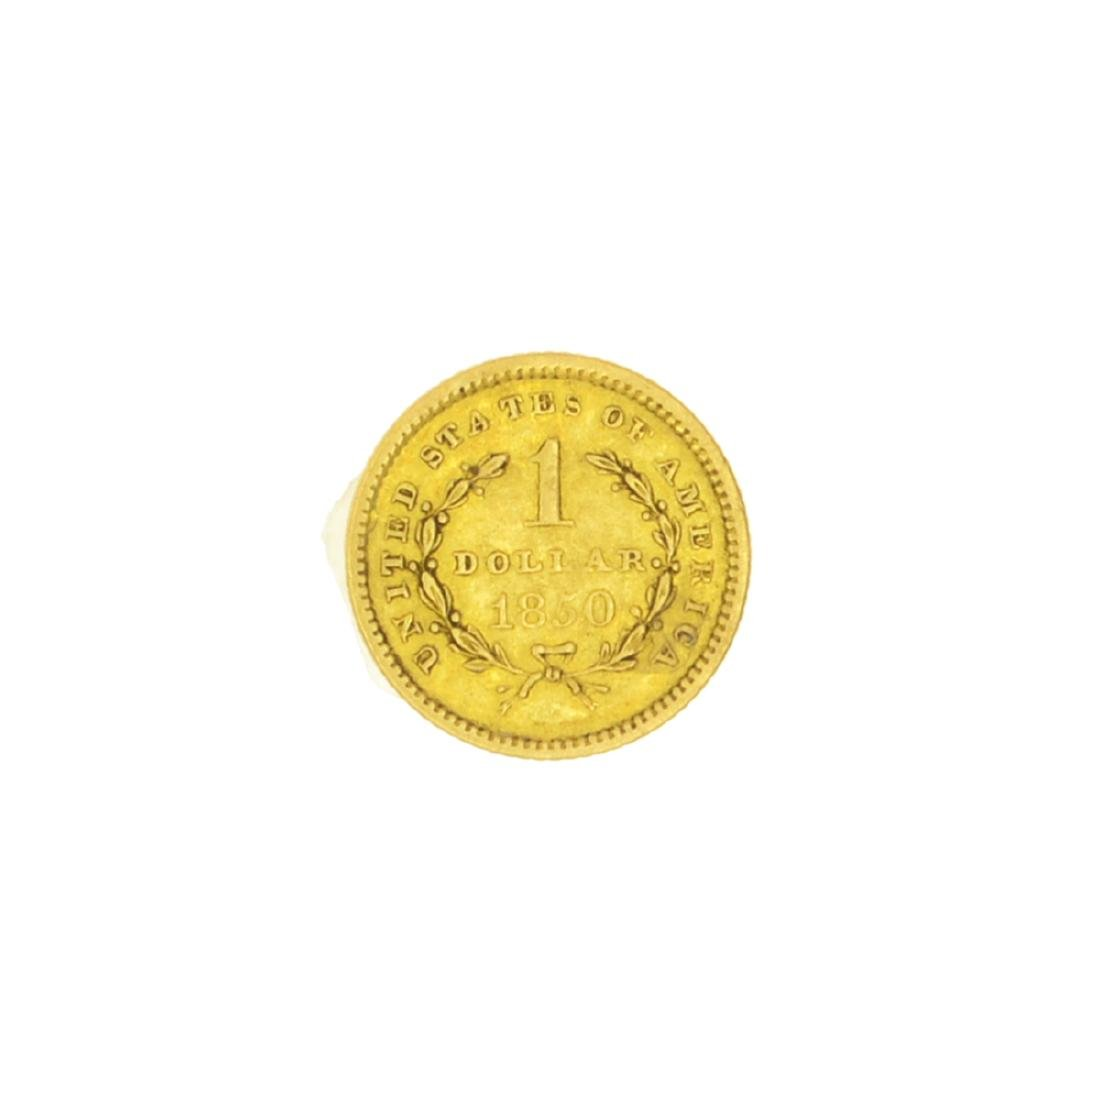 Very Rare 1850 $1 U.S. Liberty Head Gold Coin Great - 2